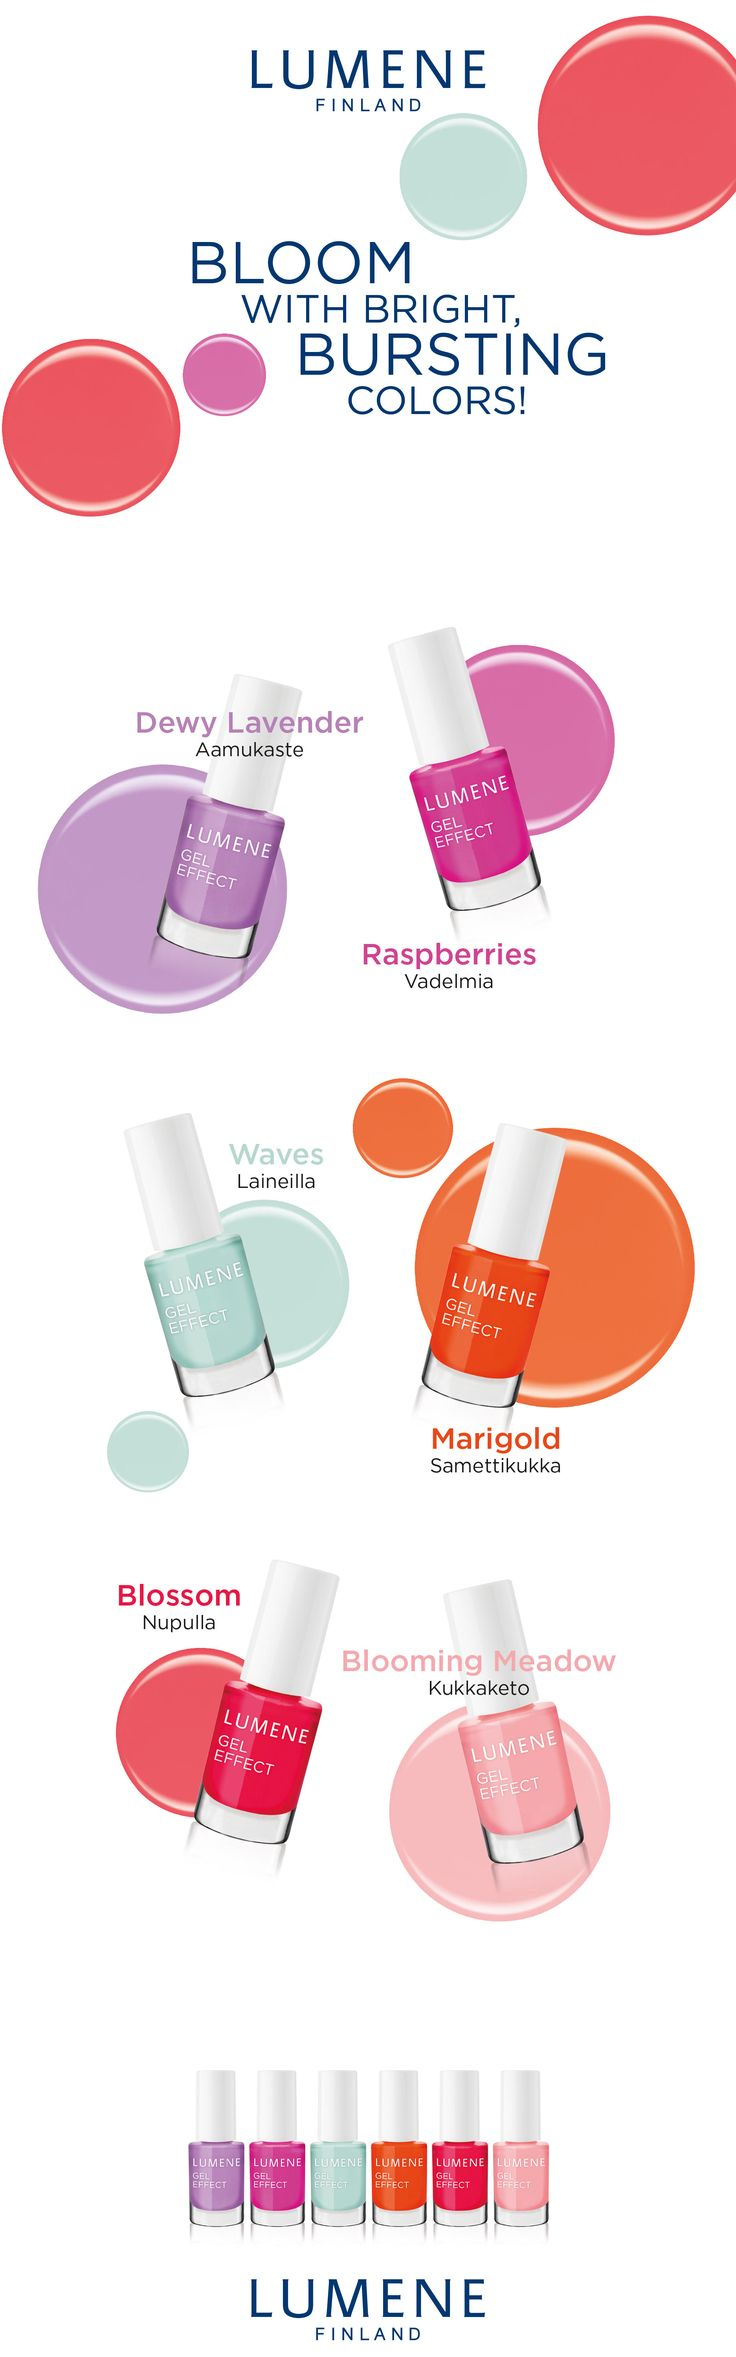 New Lumene Gel Effect Nail Polish shades for the Spring 2016. #lumene #nailpolish #spring